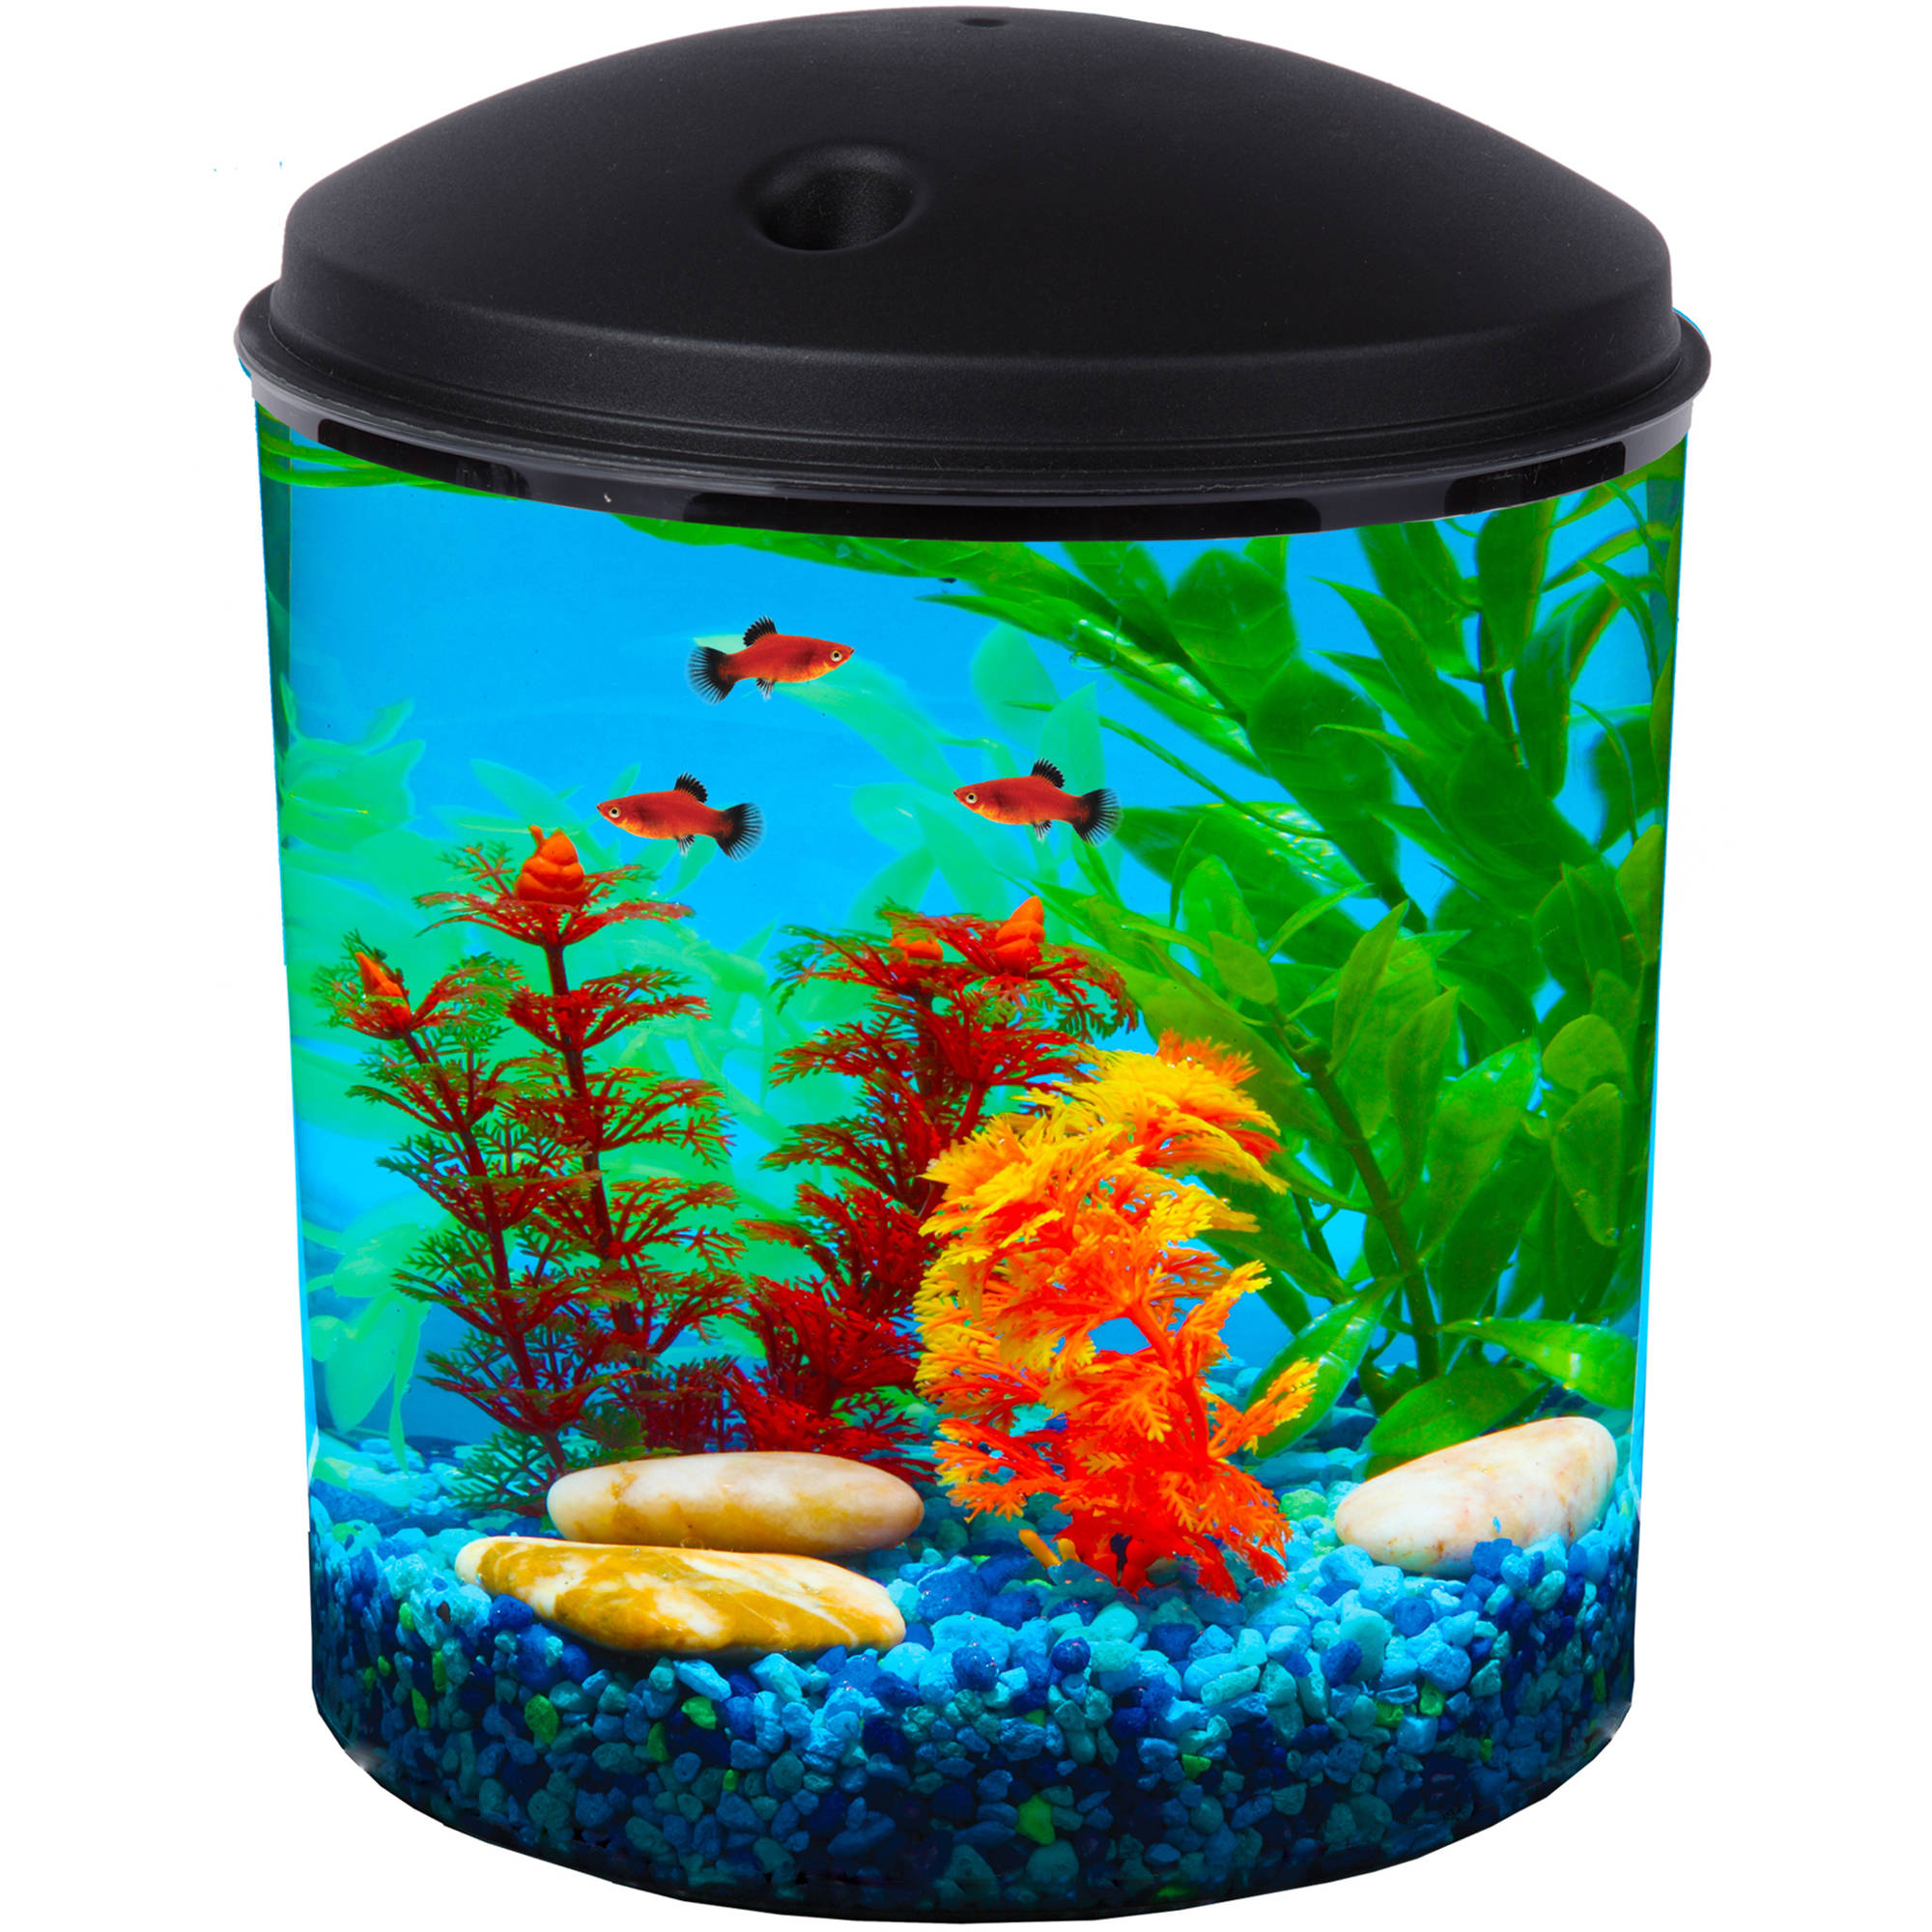 Hawkeye 2-Gallon Aquarium Kit with Filter and LED Lighting